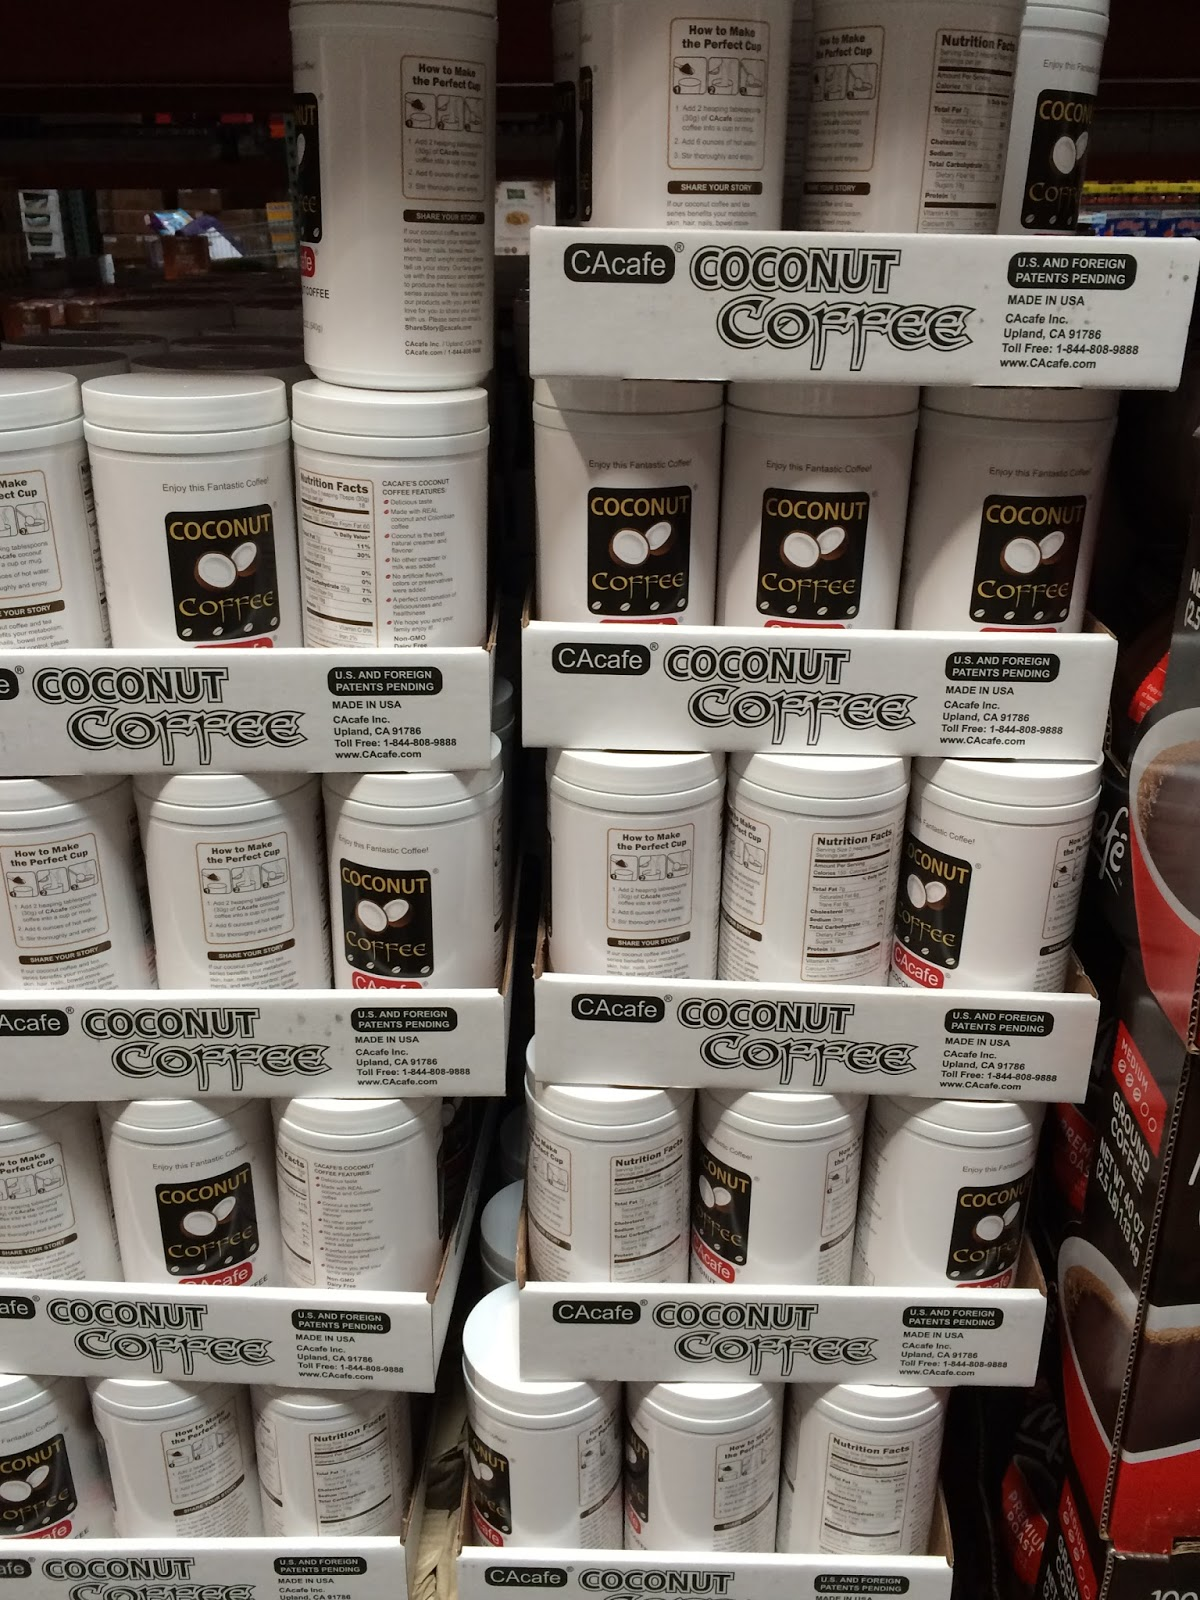 If you like coconut, then you'll enjoy CAcafe Coconut Coffee